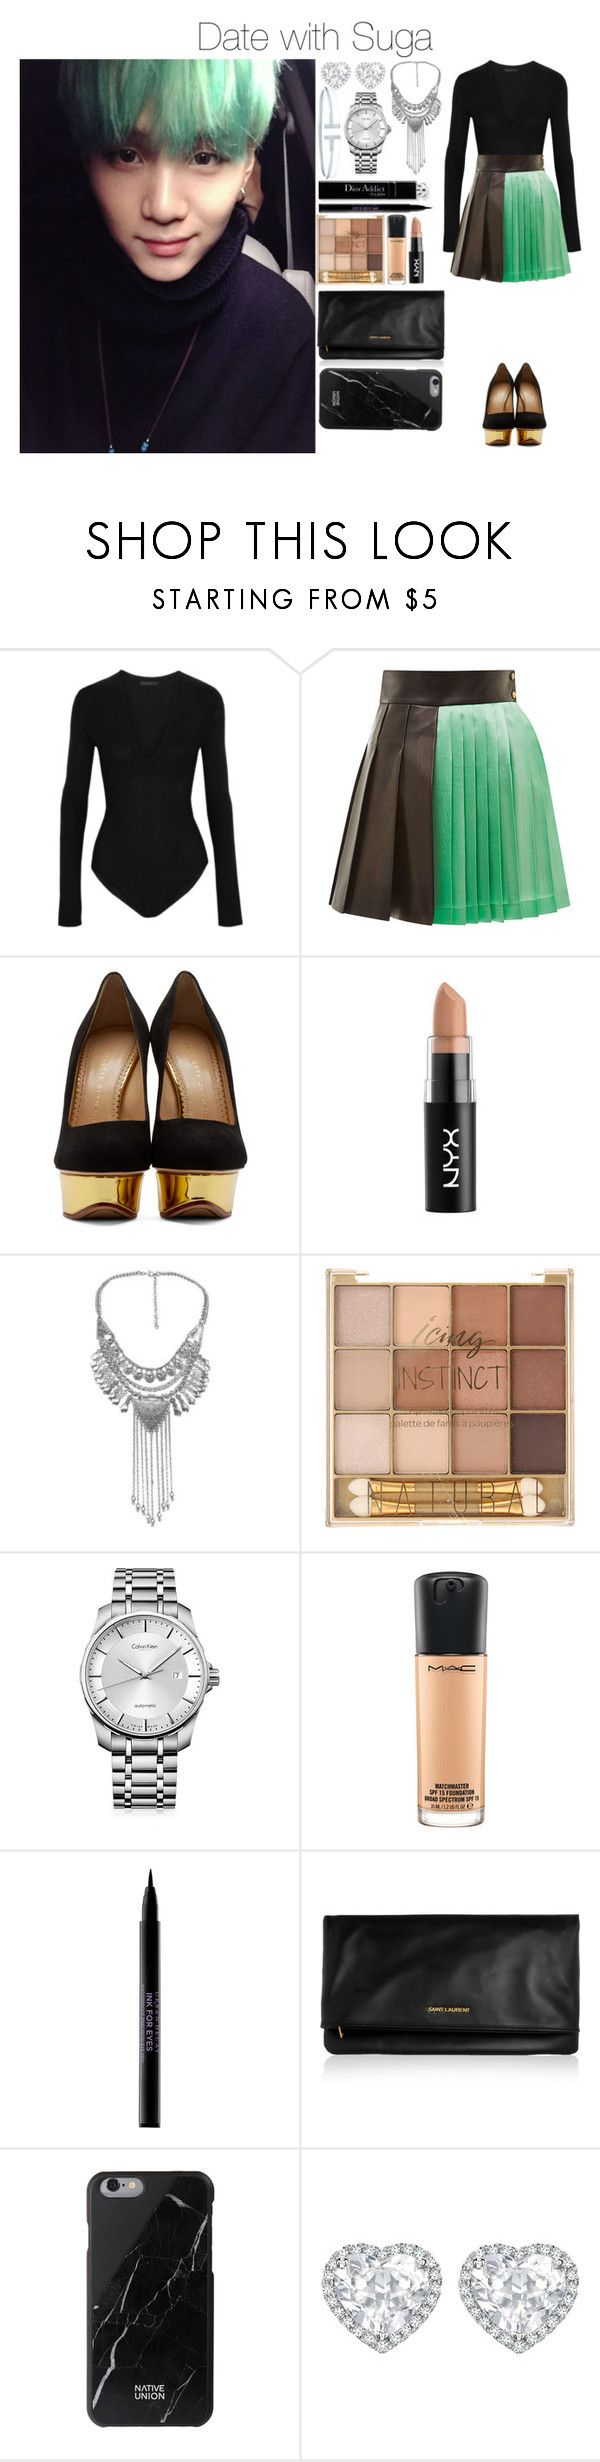 """Date with Suga"" by yonce4park ❤ liked on Polyvore featuring Donna Karan, FAUSTO PUGLISI, Charlotte Olympia, Calvin Klein, MAC Cosmetics, Urban Decay, Yves Saint Laurent, Native Union, Kiki mcdonough and Tiffany & Co."